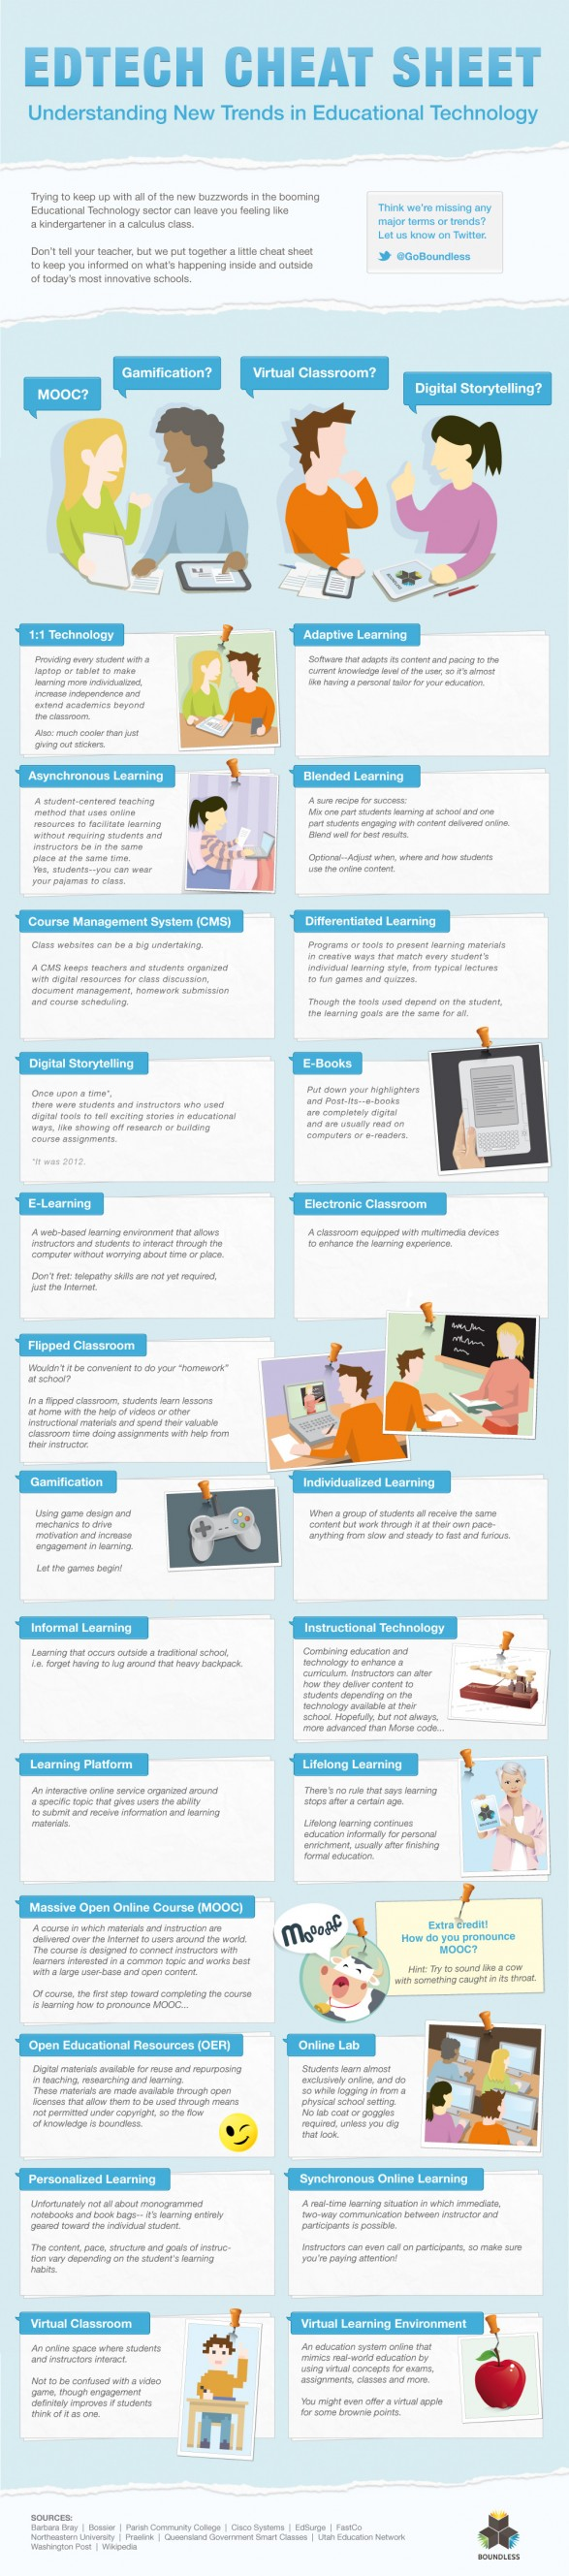 Ed Tech Cheat Sheet